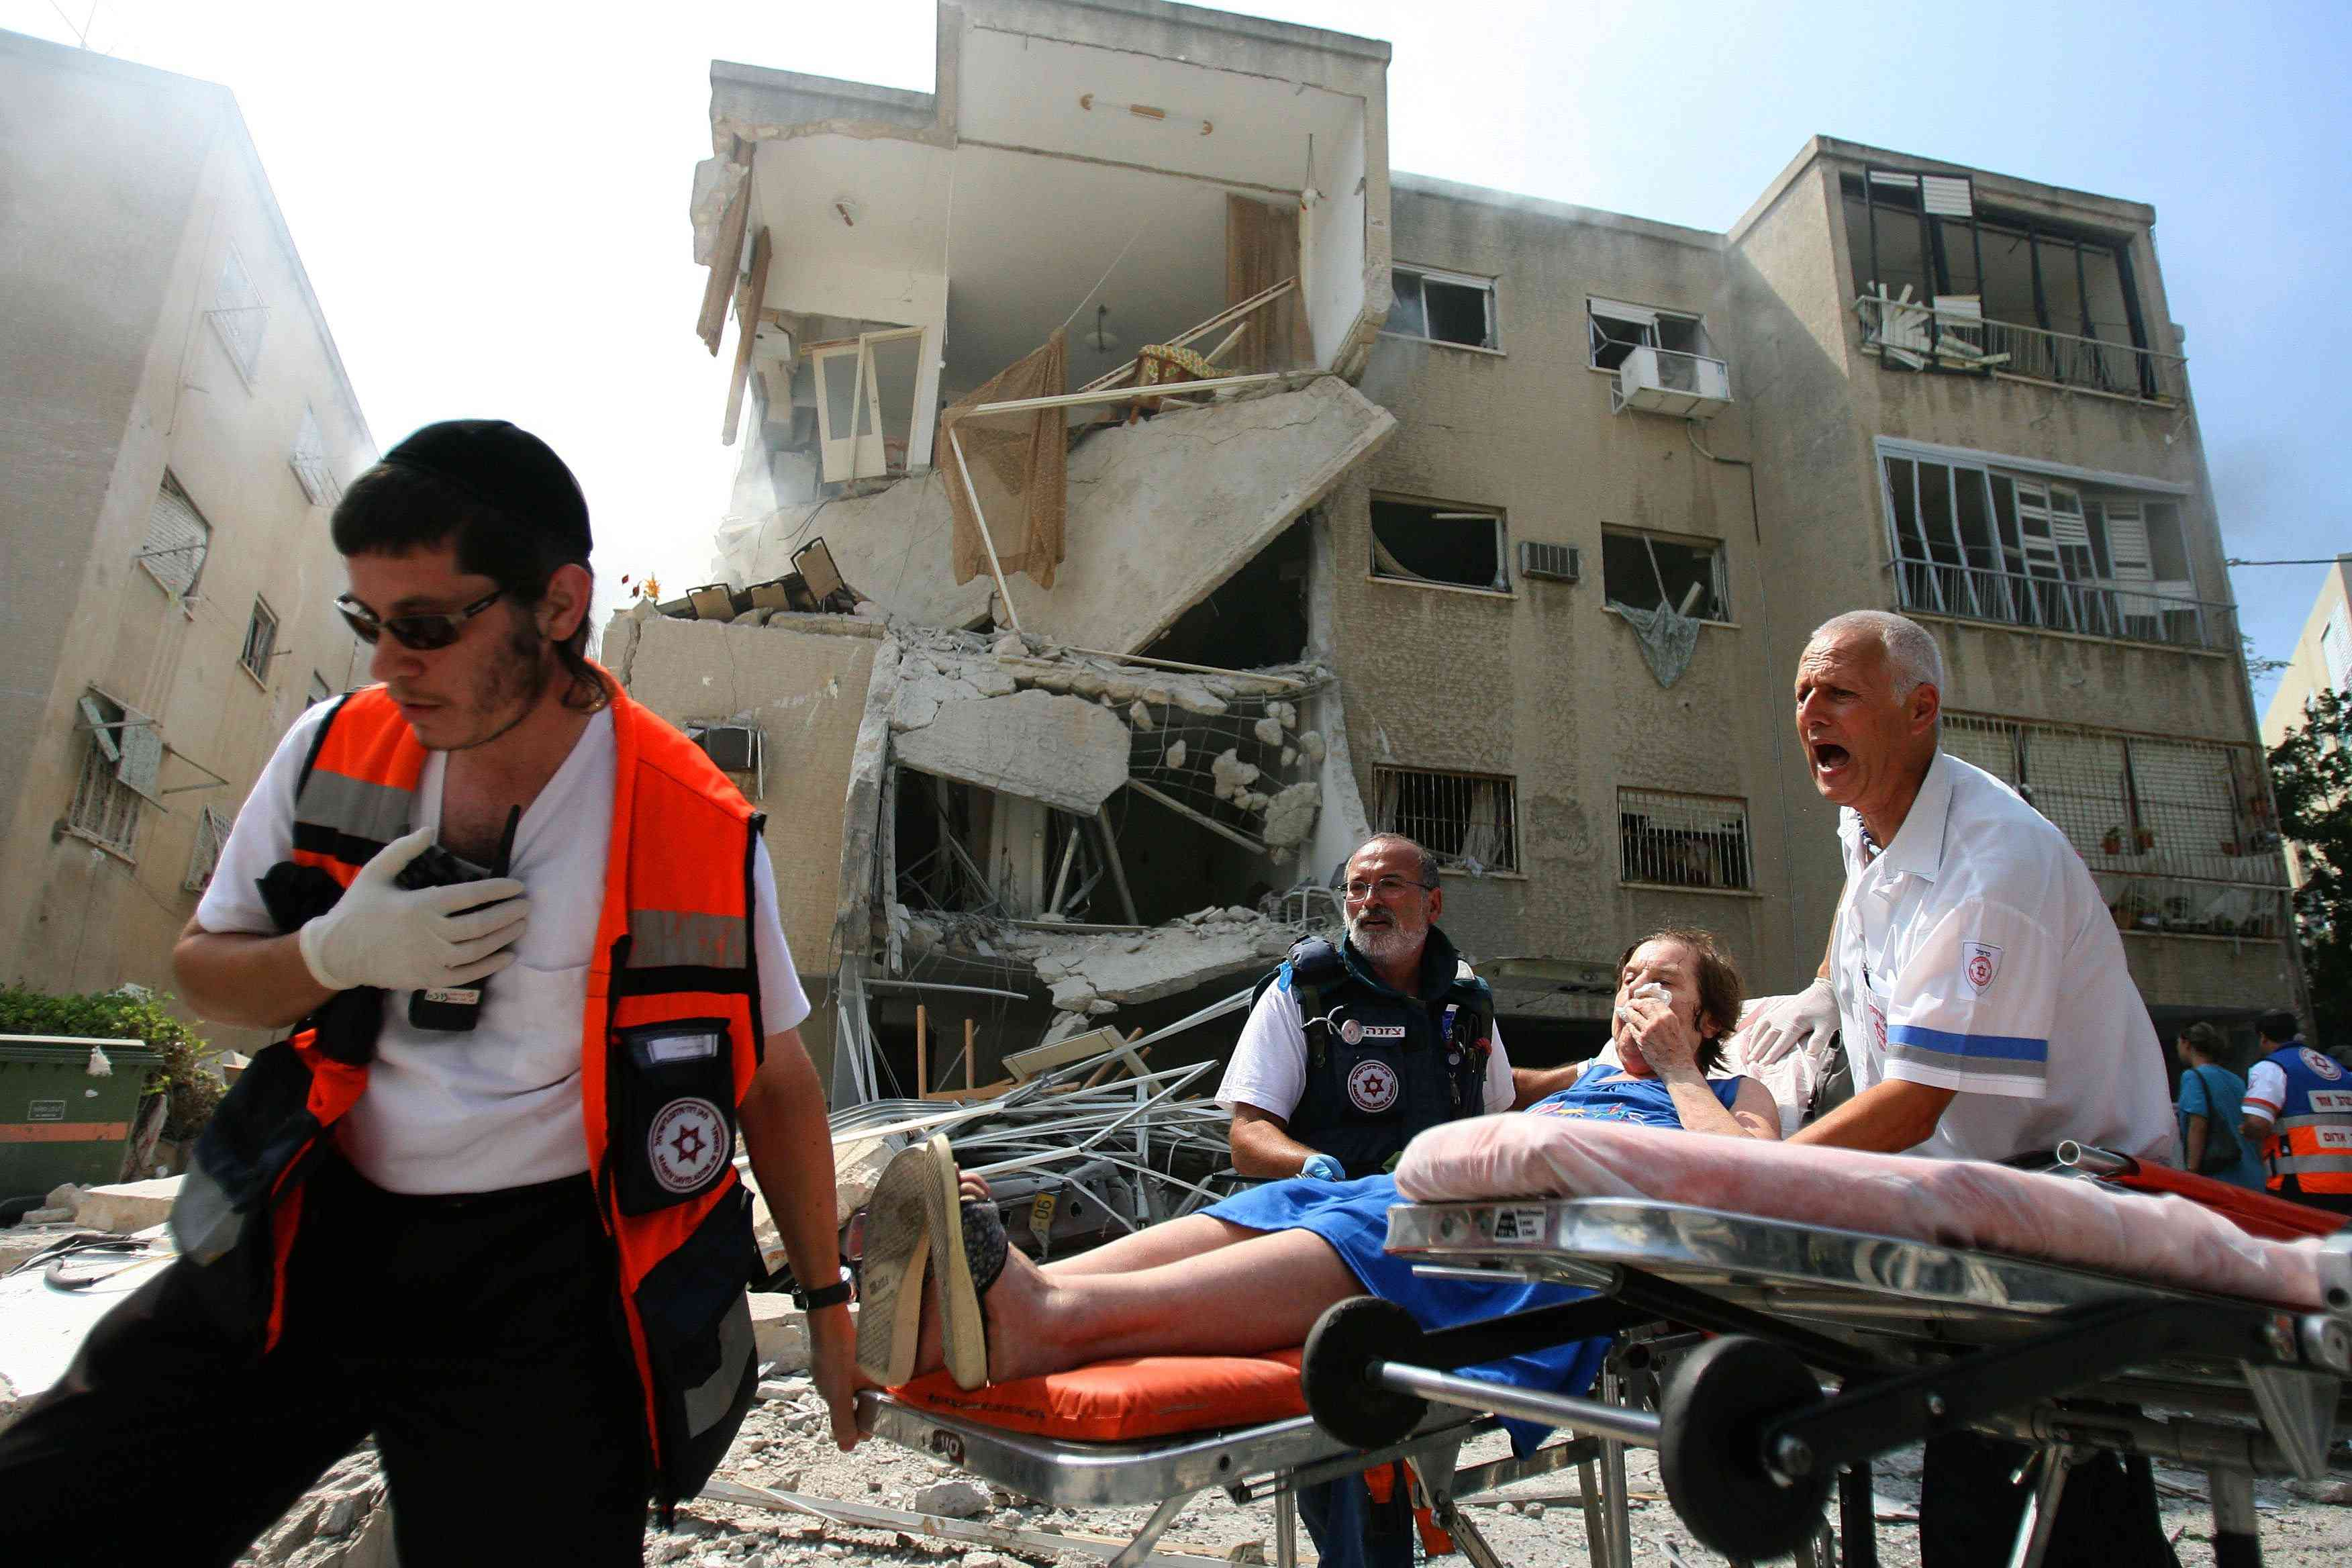 Wounded are taken away after a Hezbollah missile strike July 17, 2006 in the northern Israeli city of Haifa. Uriel Sinai/Getty Images